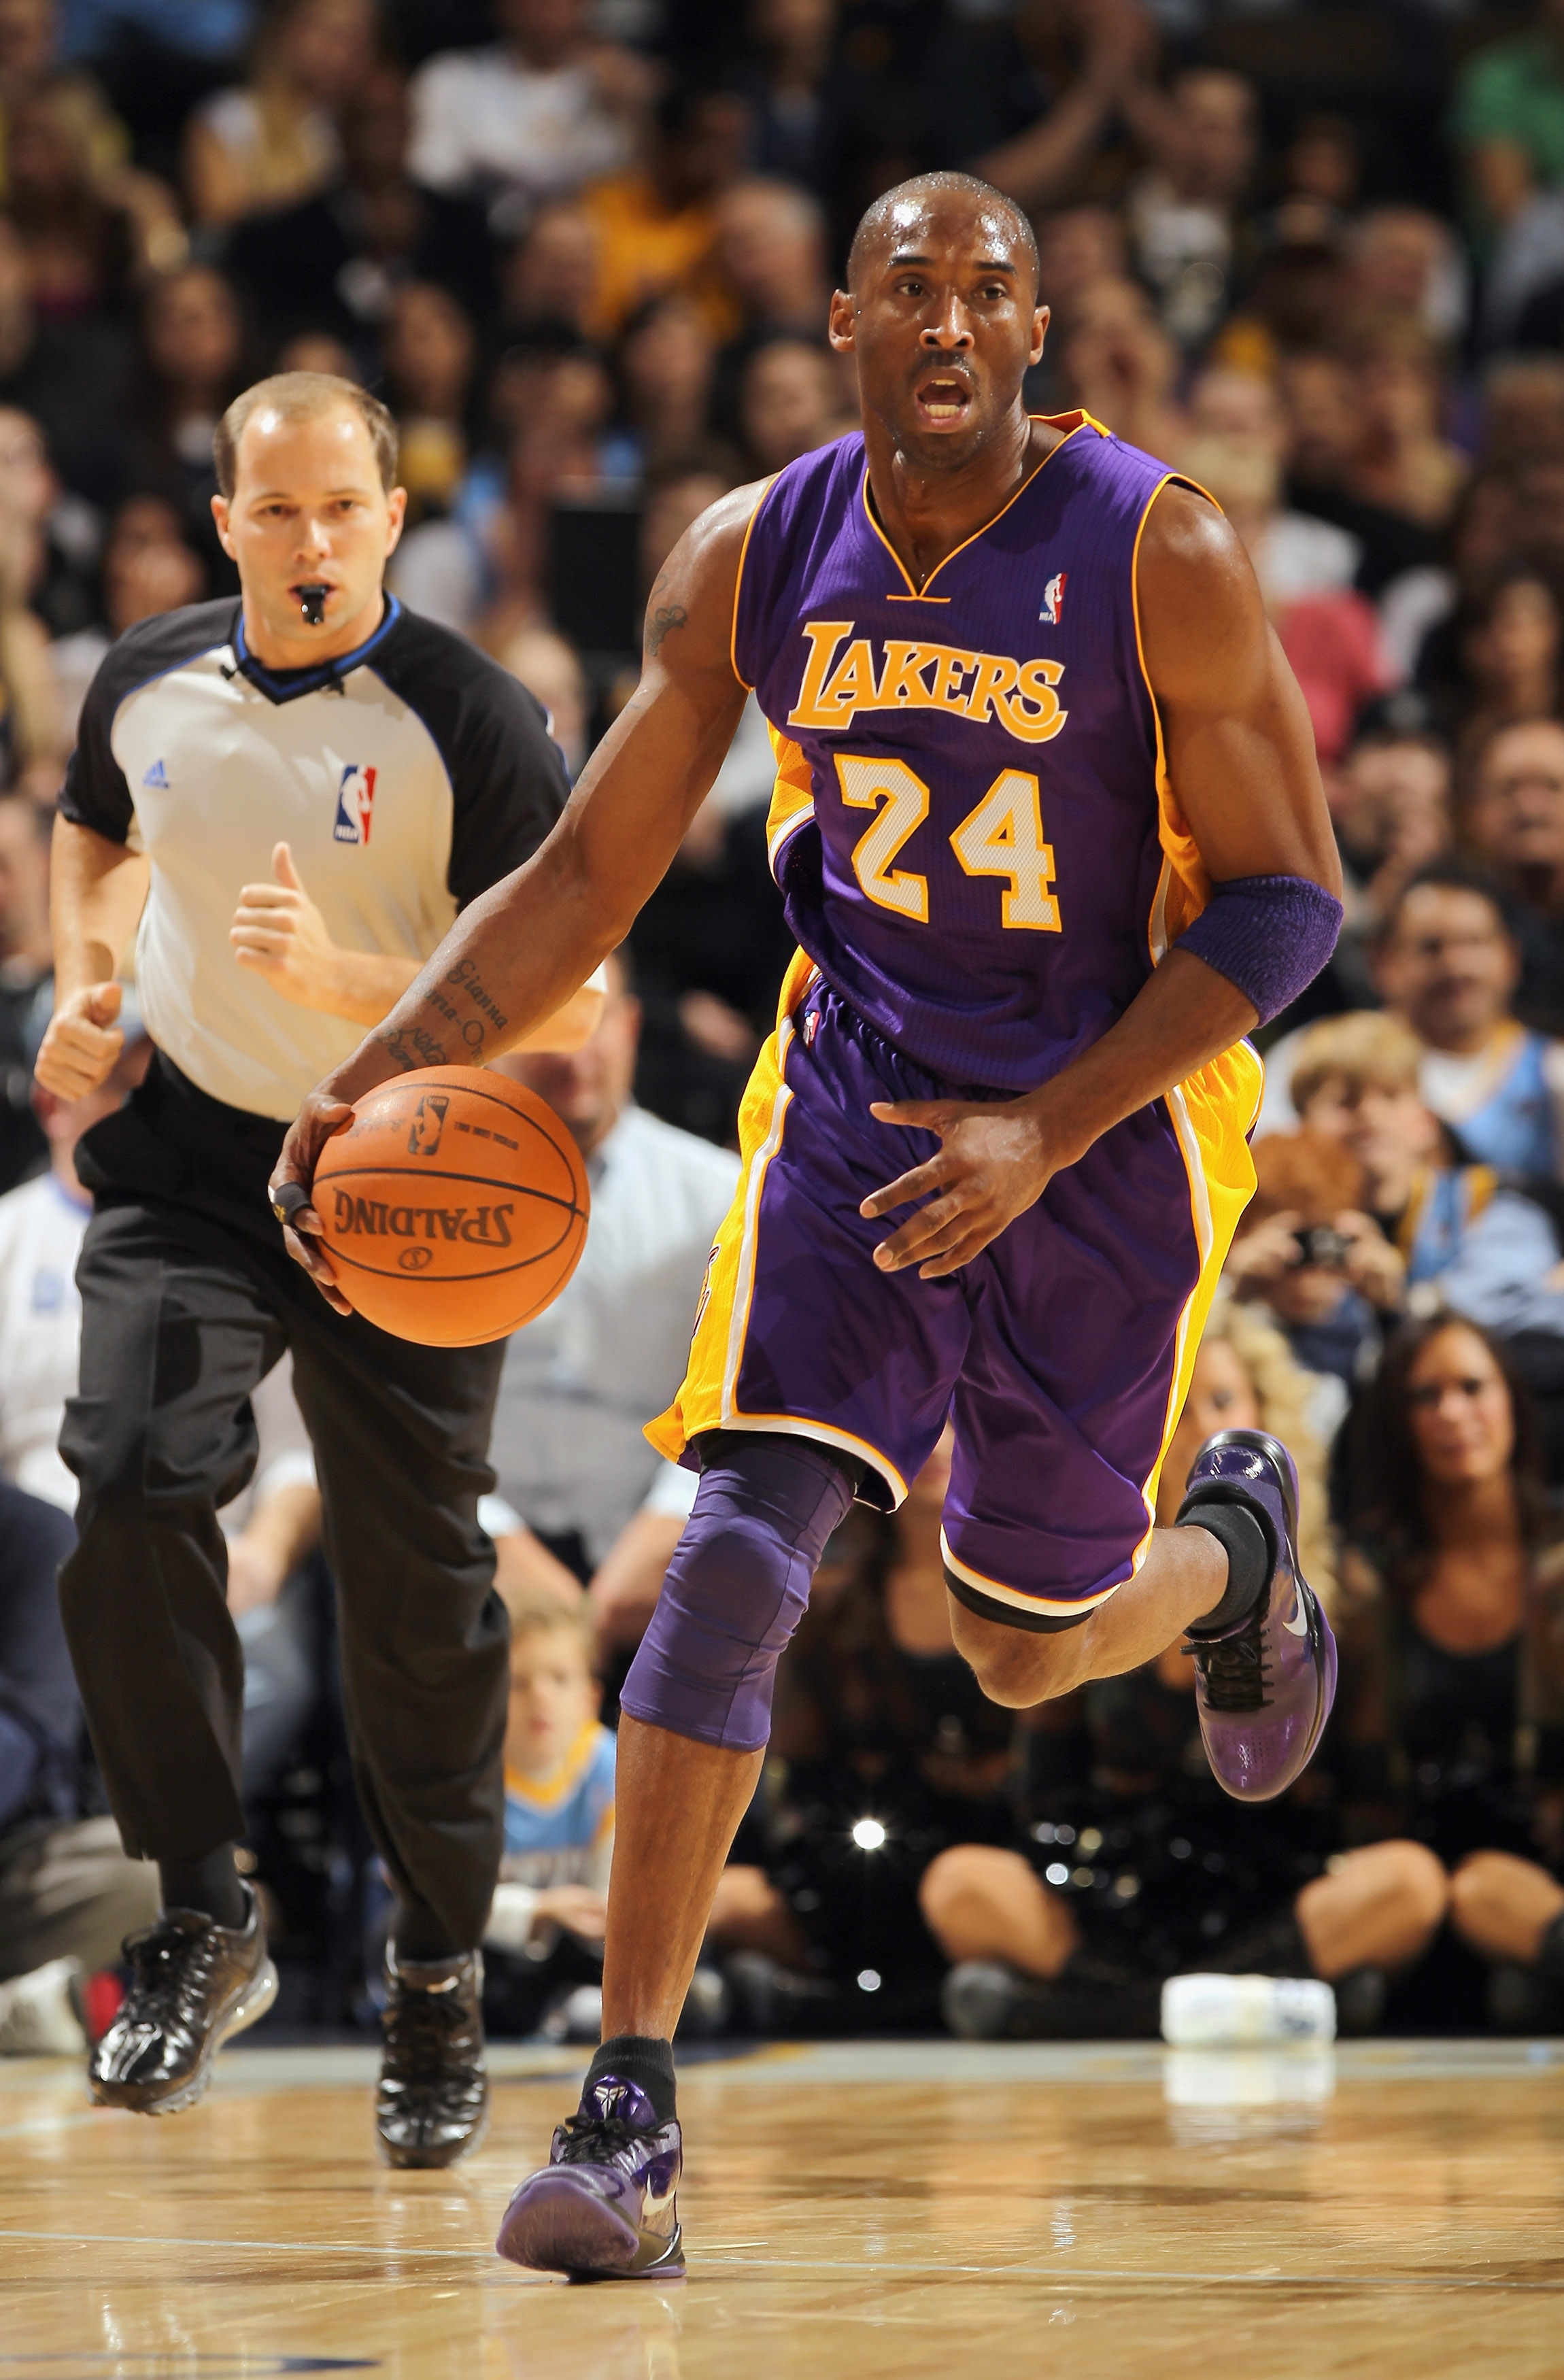 DENVER - NOVEMBER 11:  Kobe Bryant #24 of the Los Angeles Lakers dribbles the ball upcourt against the Denver Nuggets at the Pepsi Center on November 11, 2010 in Denver, Colorado. The Nuggets defeated the Lakers 118-112.  NOTE TO USER: User expressly ackn